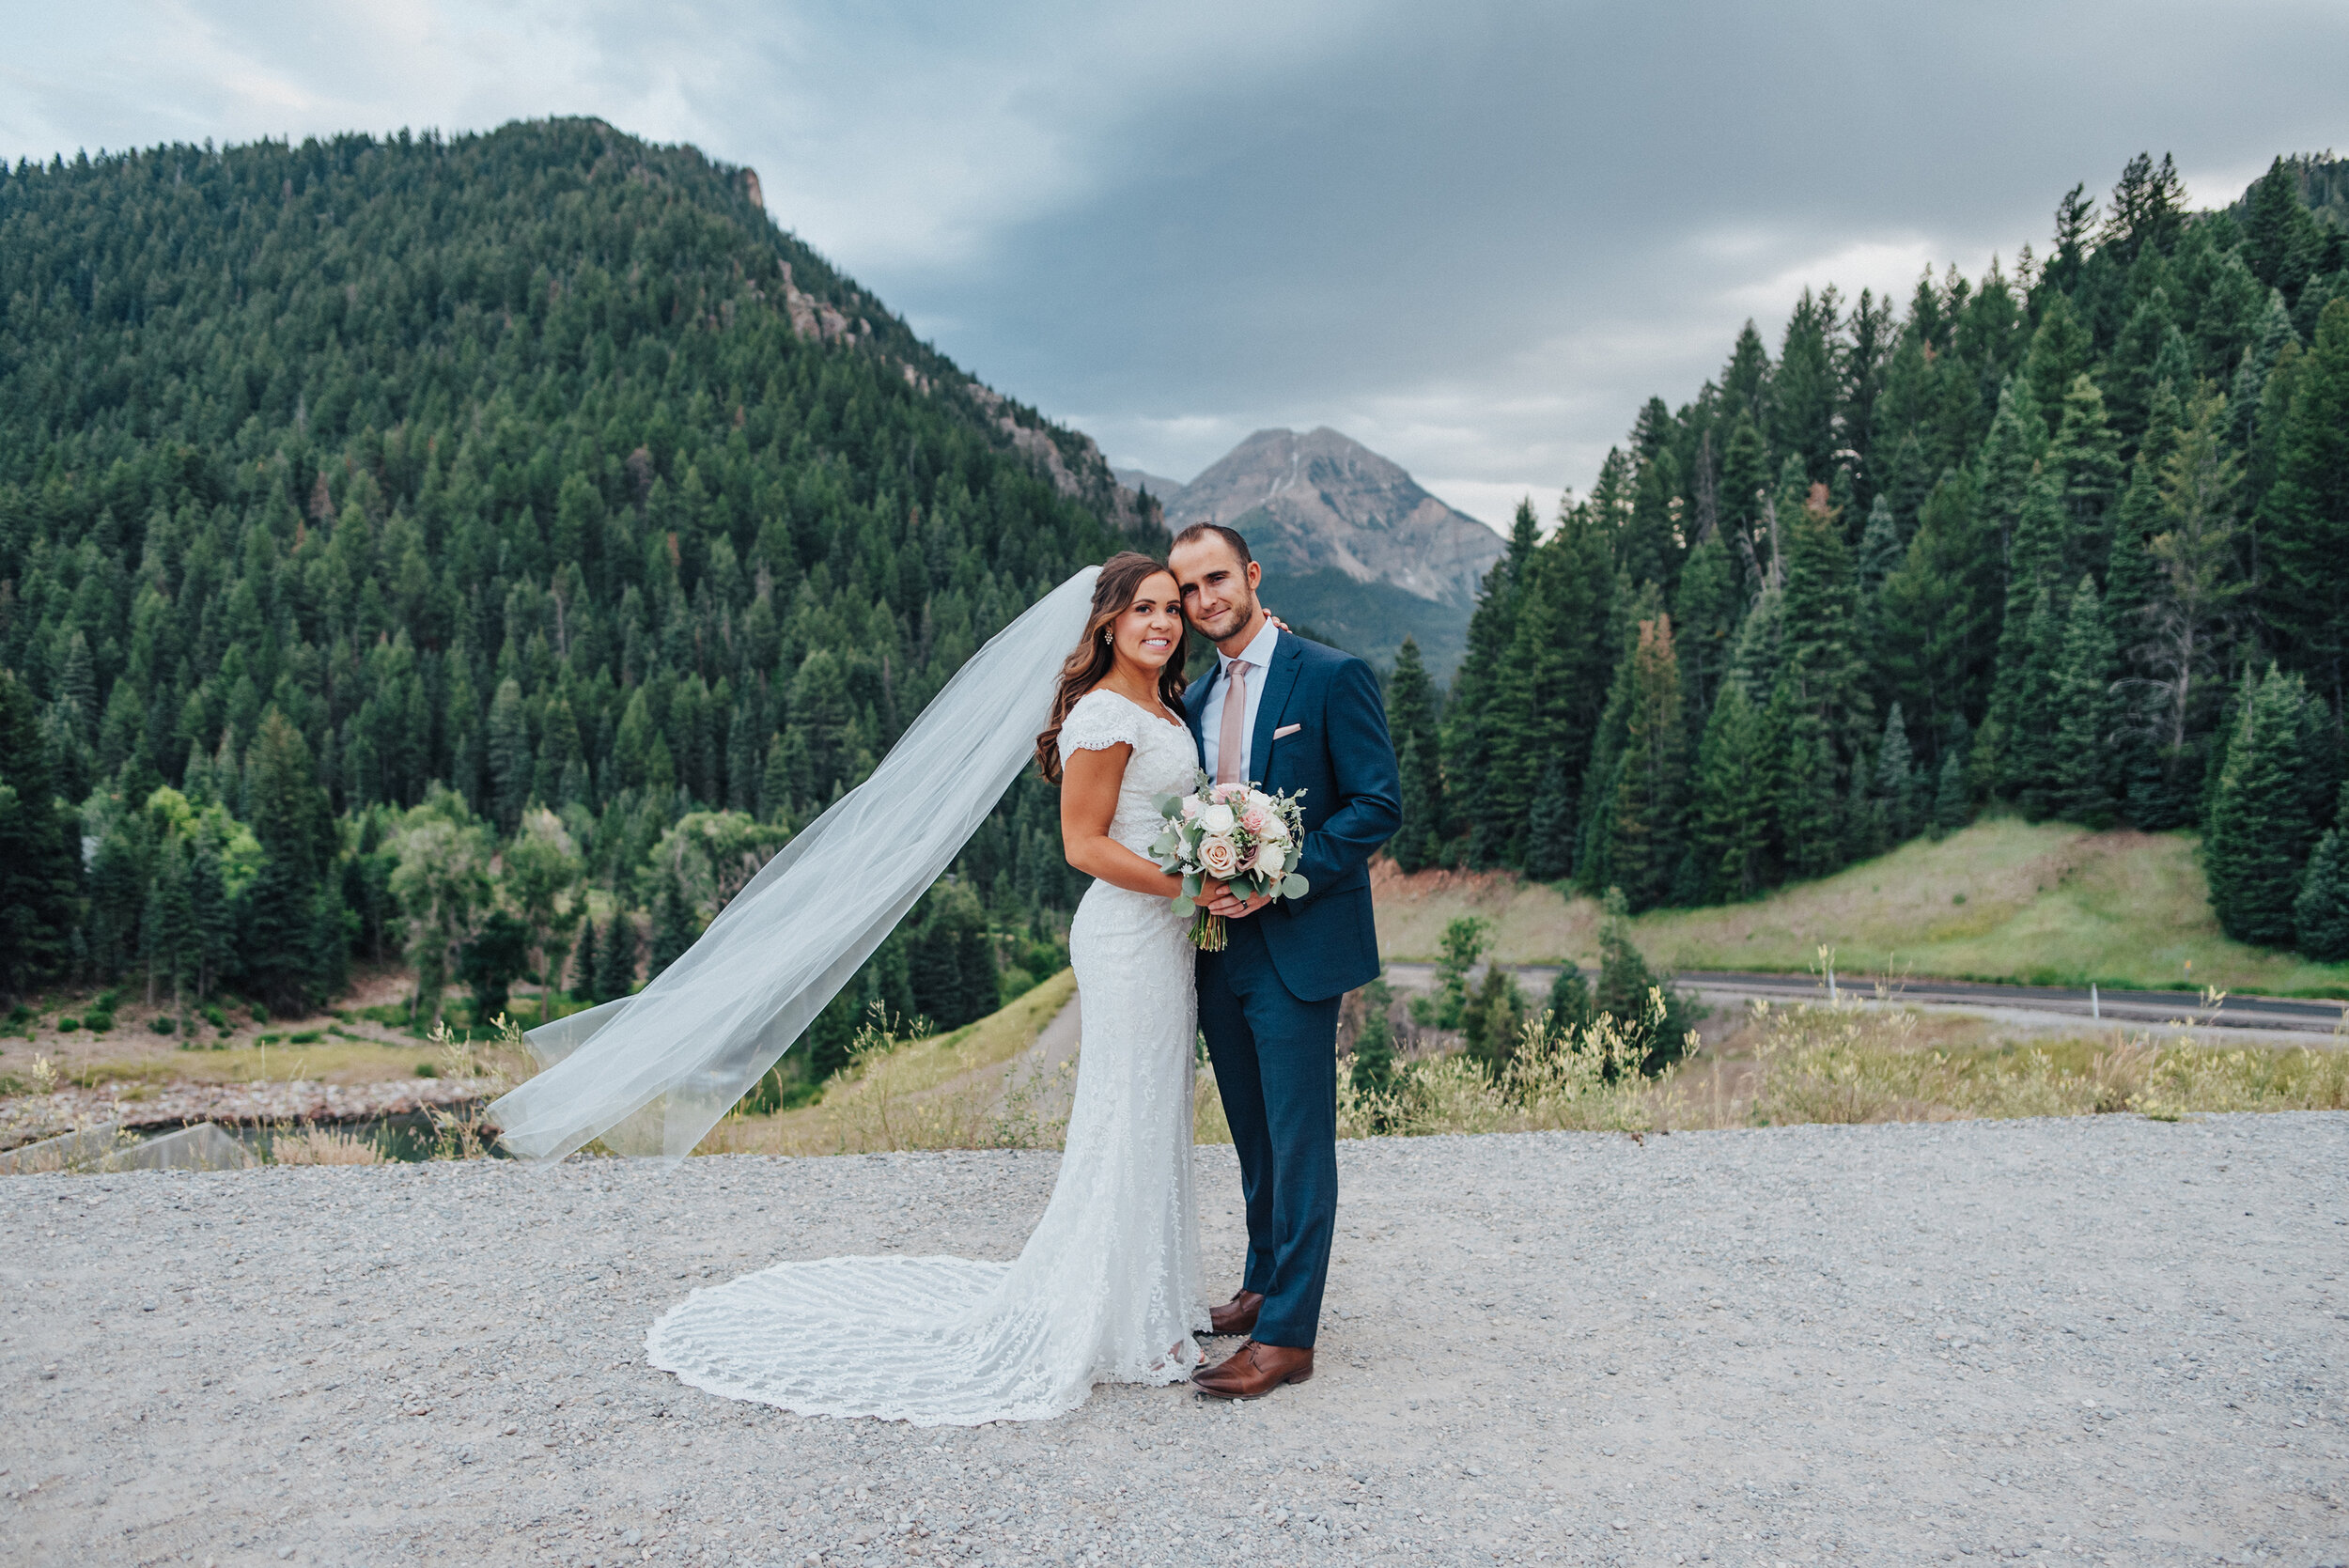 A gorgeous bride and groom look into the camera while softly embracing each other in front of the breathtaking Tibble Fork Reservoir. Navy suit light pink tie light pink floral bouquet evergreen trees mountains in the background classic wedding shot #husbandandwife #younglove #tibbleforkreservoir #utahwedding #americanforkcanyon #coupleshoot #formals #weddingphotography #couplesgoals #couplephotography #weddingphotographer #couplesphotography #groom #bride